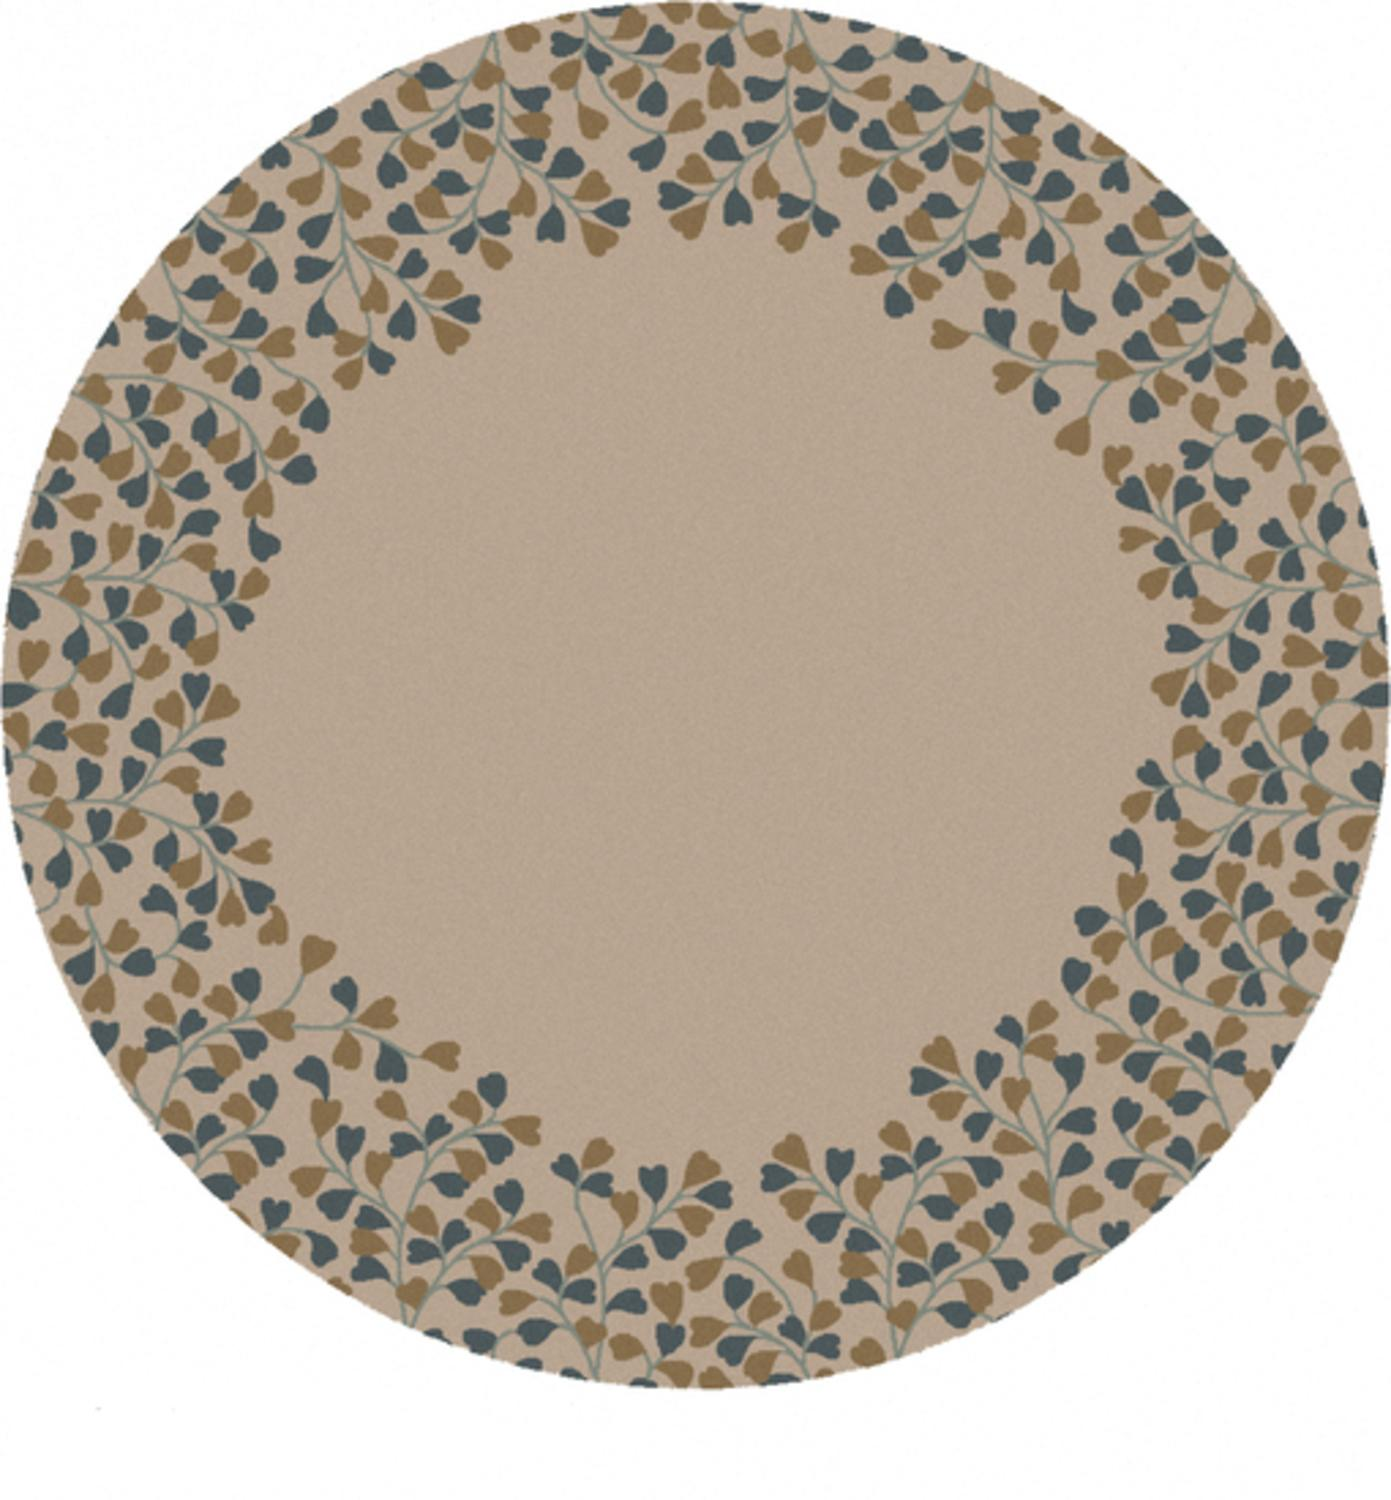 8' Acampe Brown and Wheat Round Hand Tufted Wool Area Throw Rug